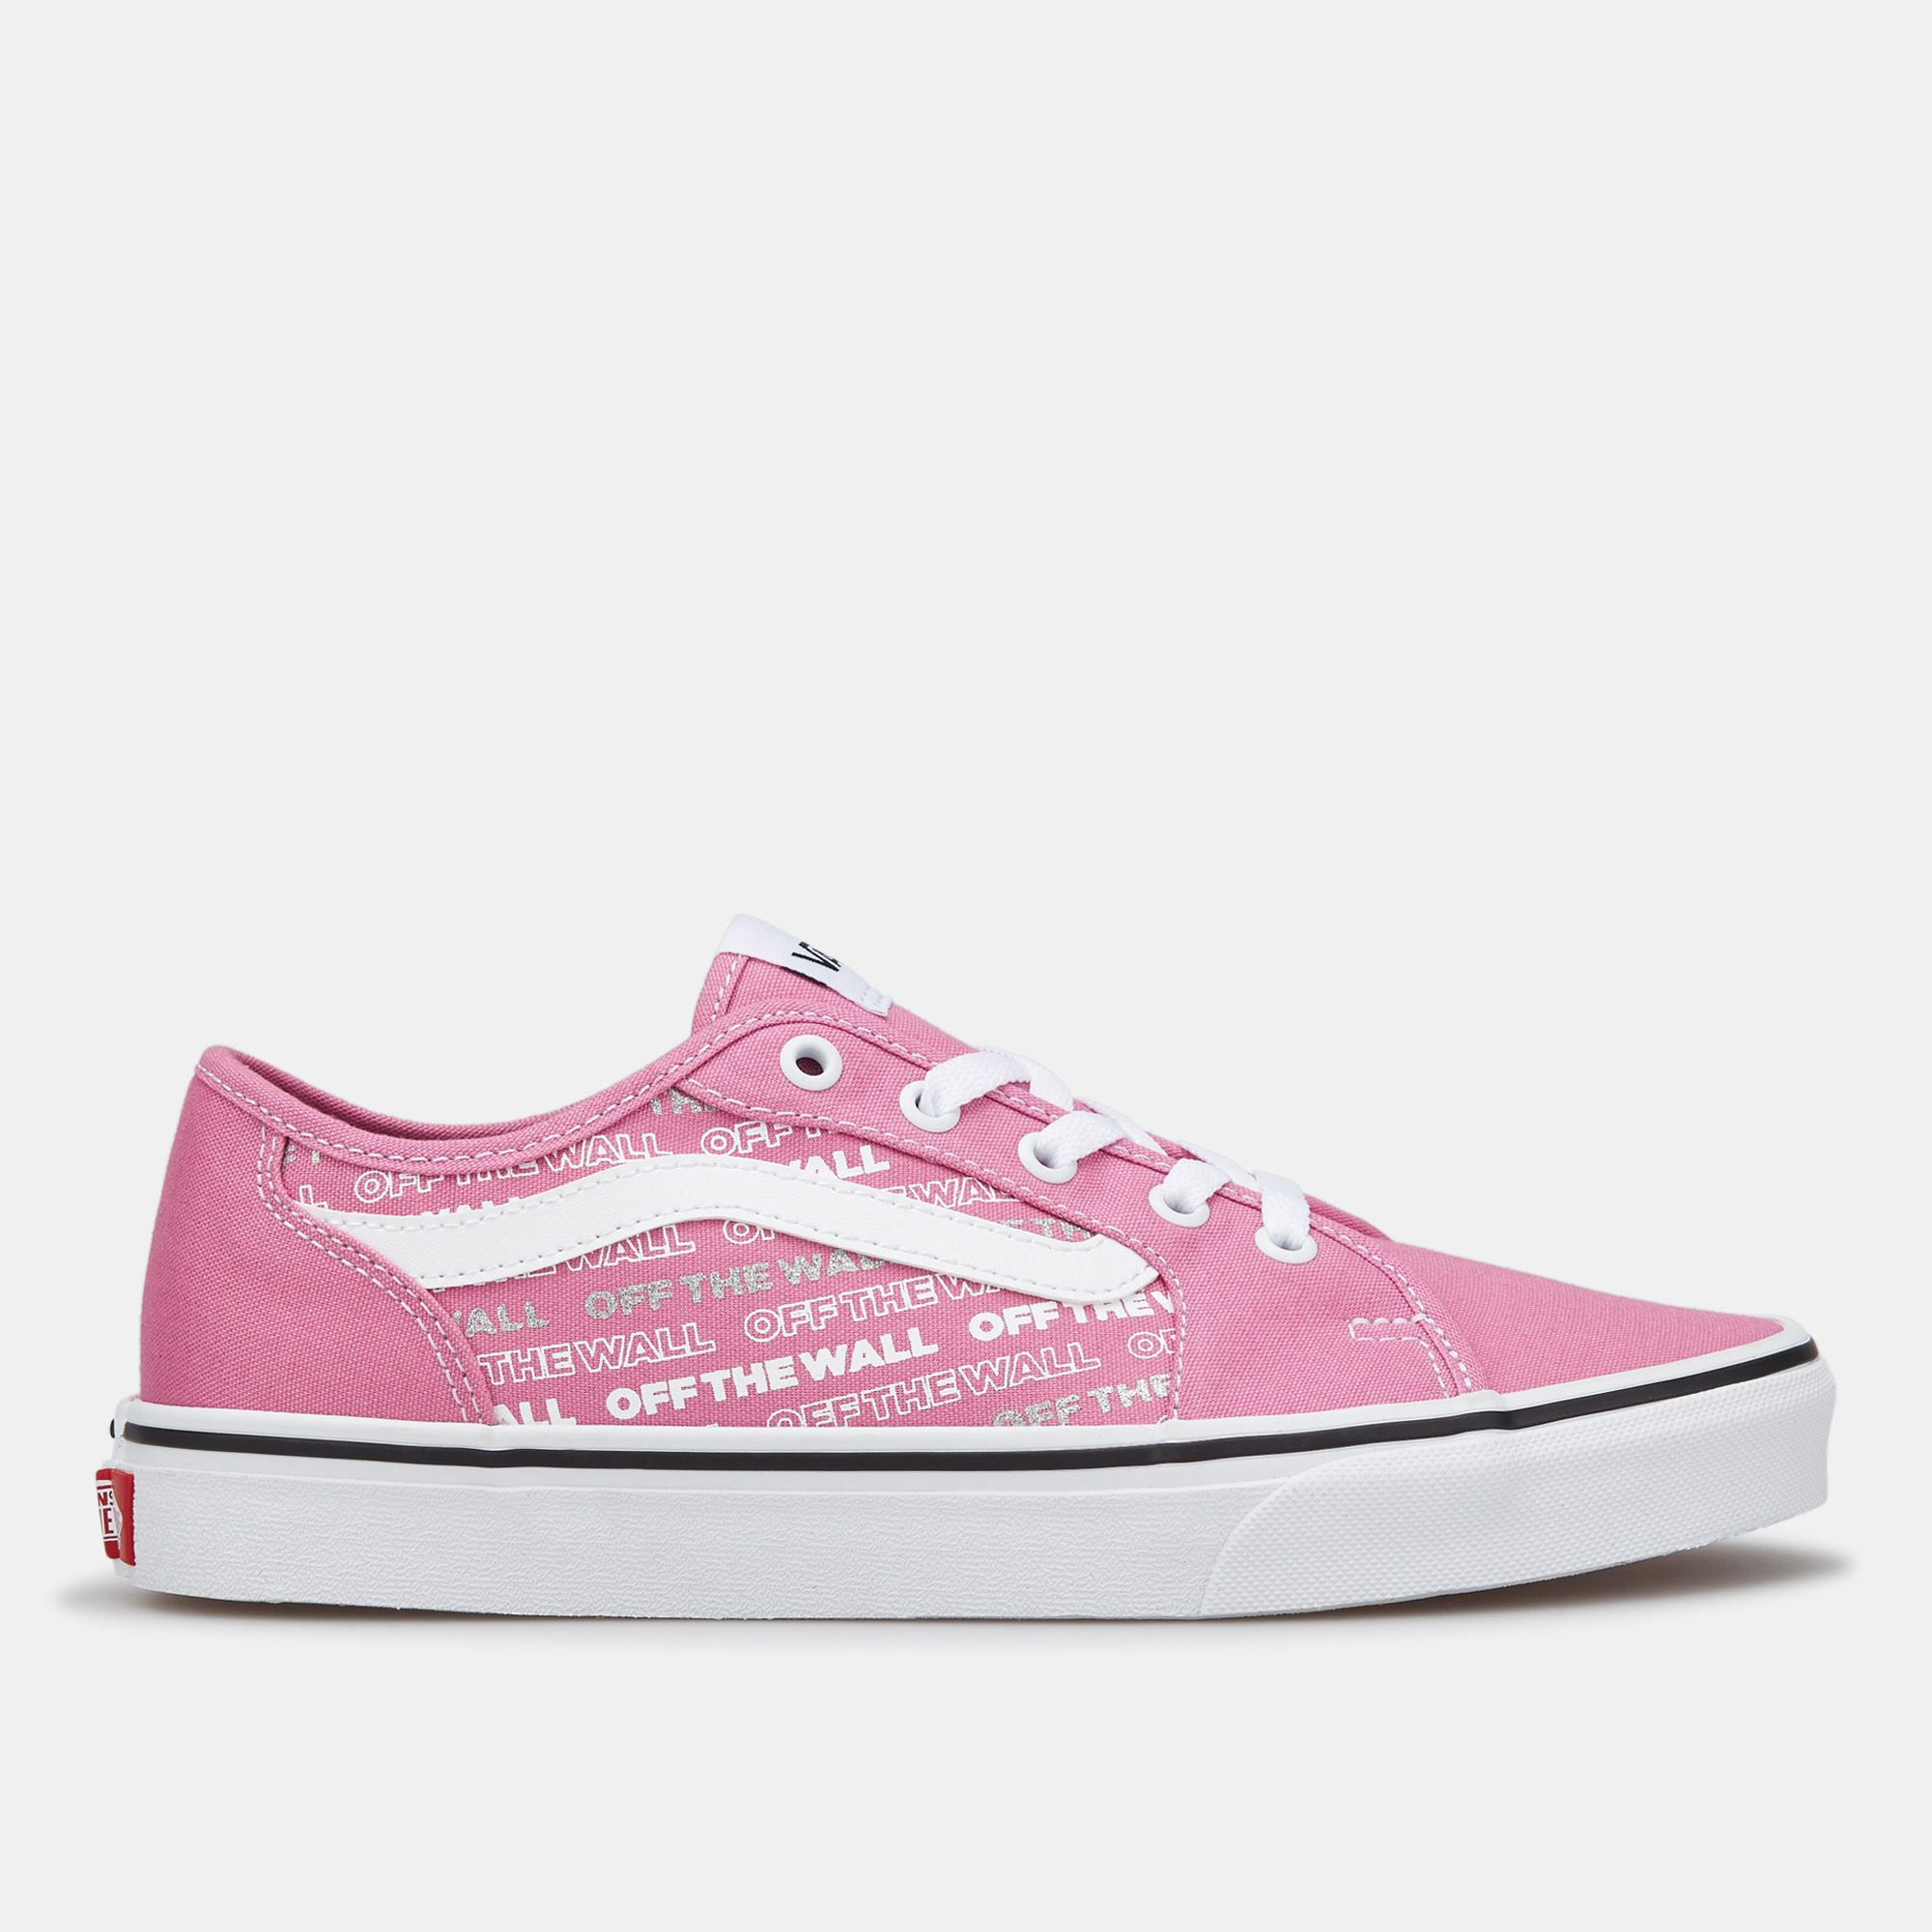 Vans Women's Filmore Decon Shoe